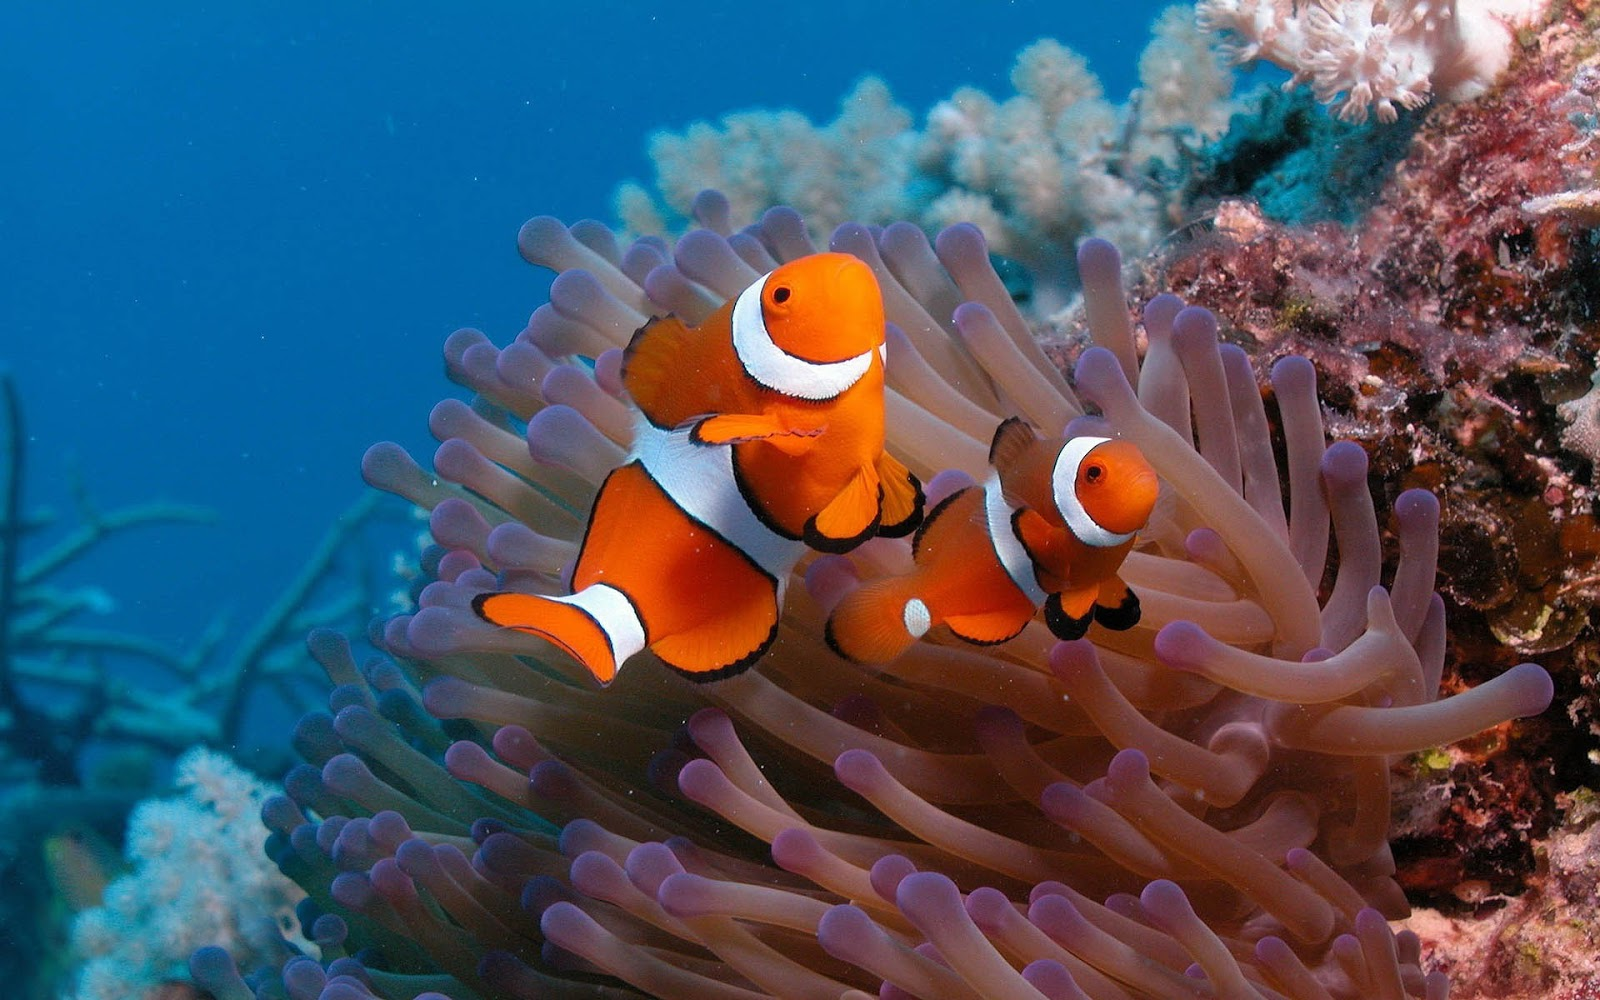 Wallpaper Of Two Clown Fish On The Ocean Floor Hd Animals 1600x1000